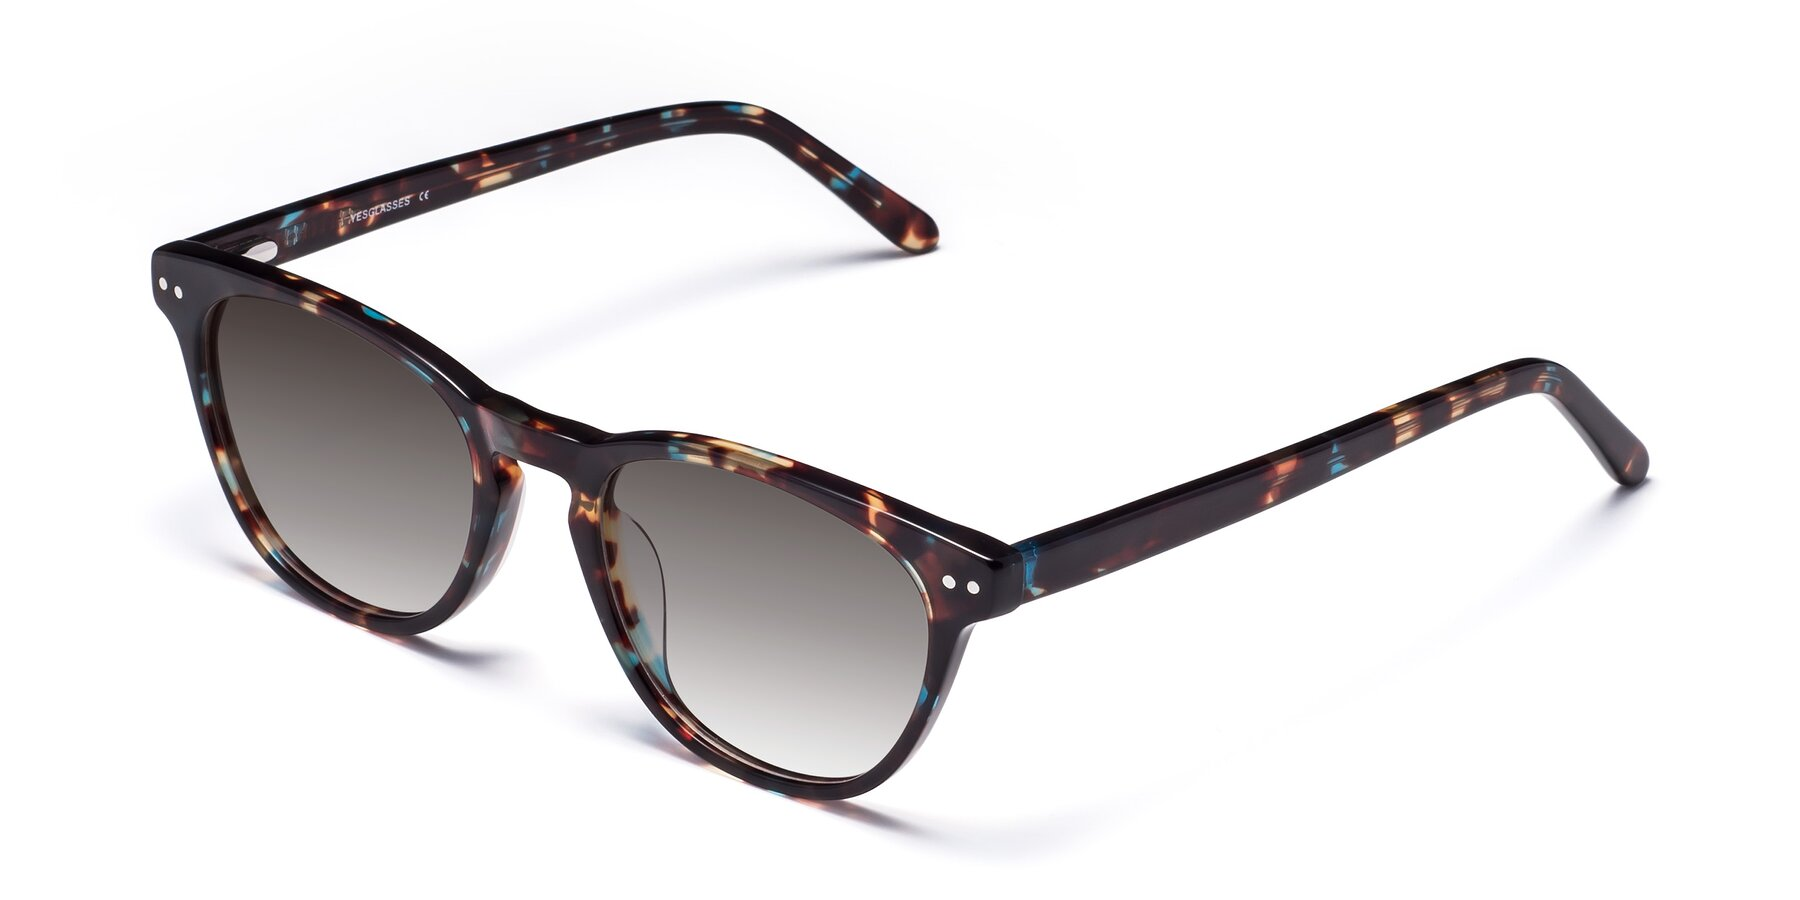 Angle of Blaze in Tortoise-Blue with Gray Gradient Lenses